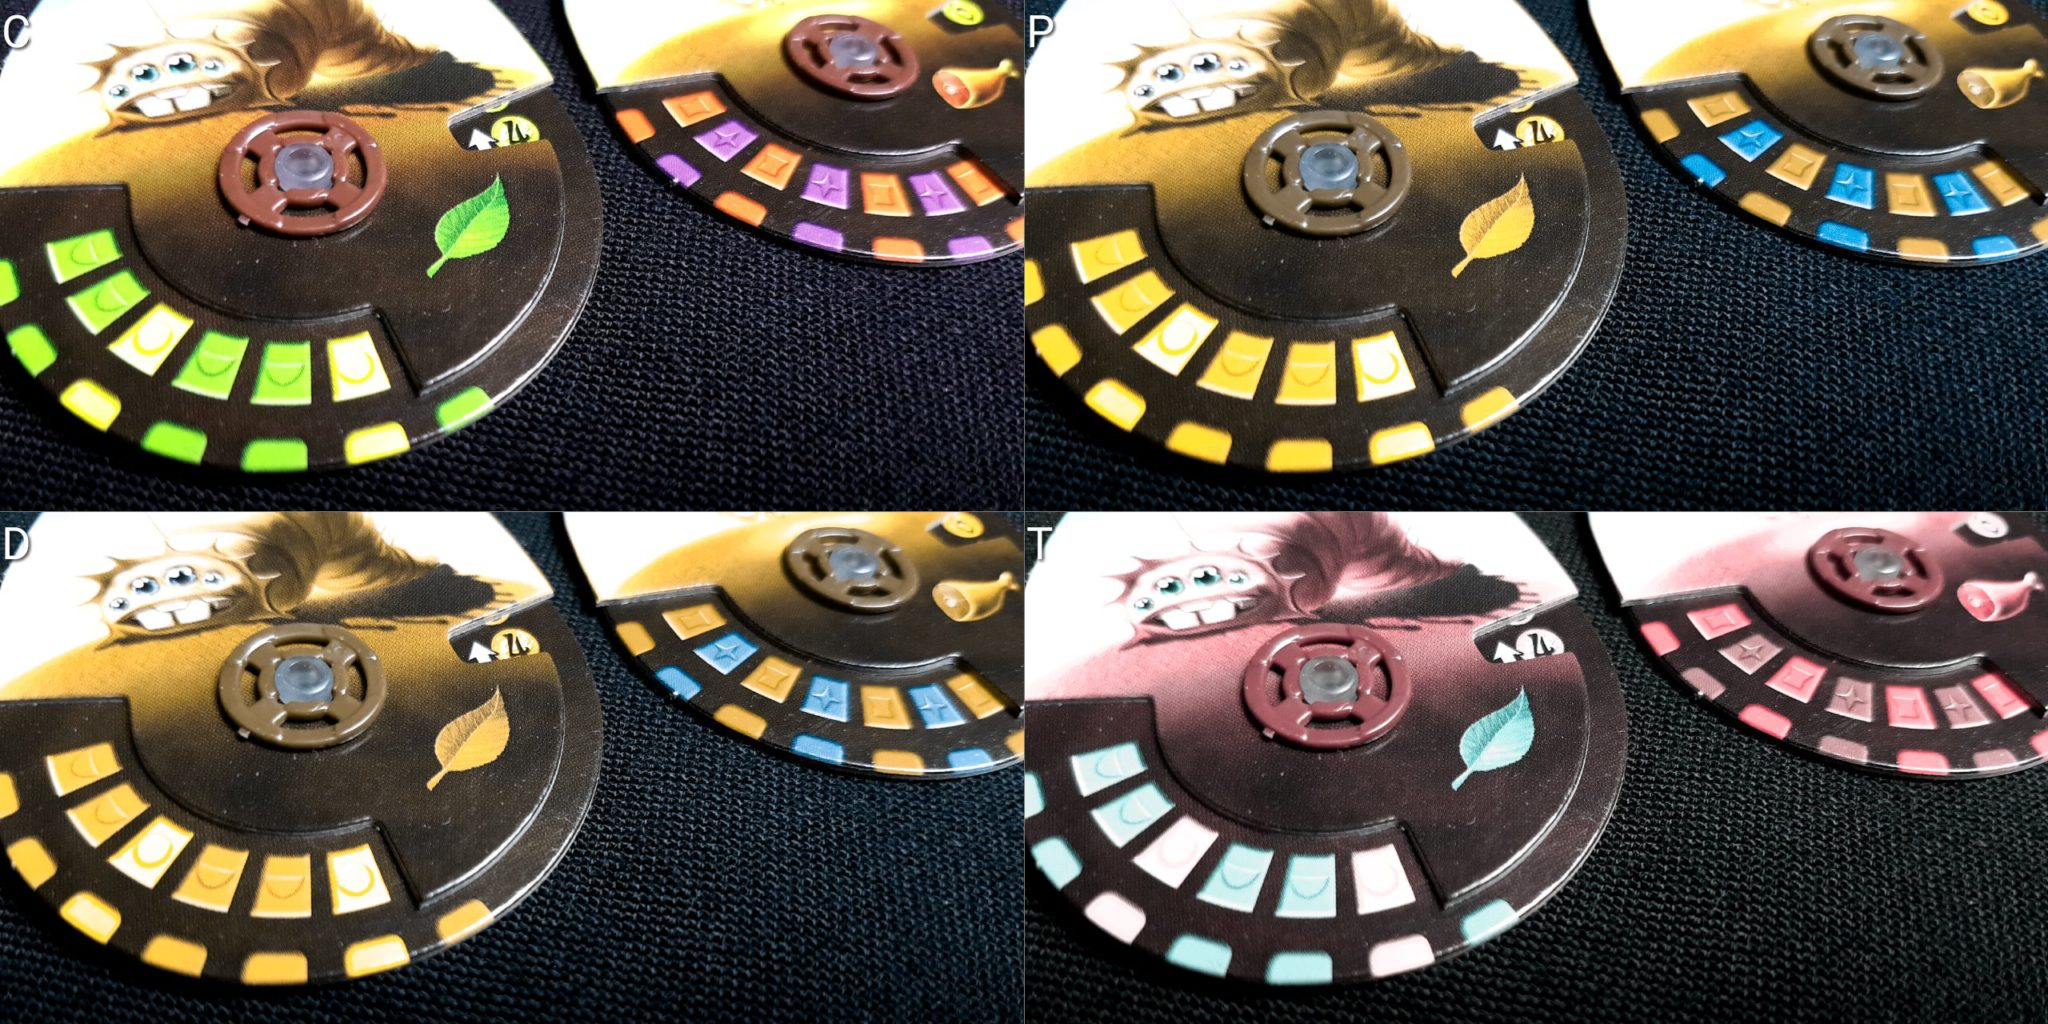 Colour blind pet dials